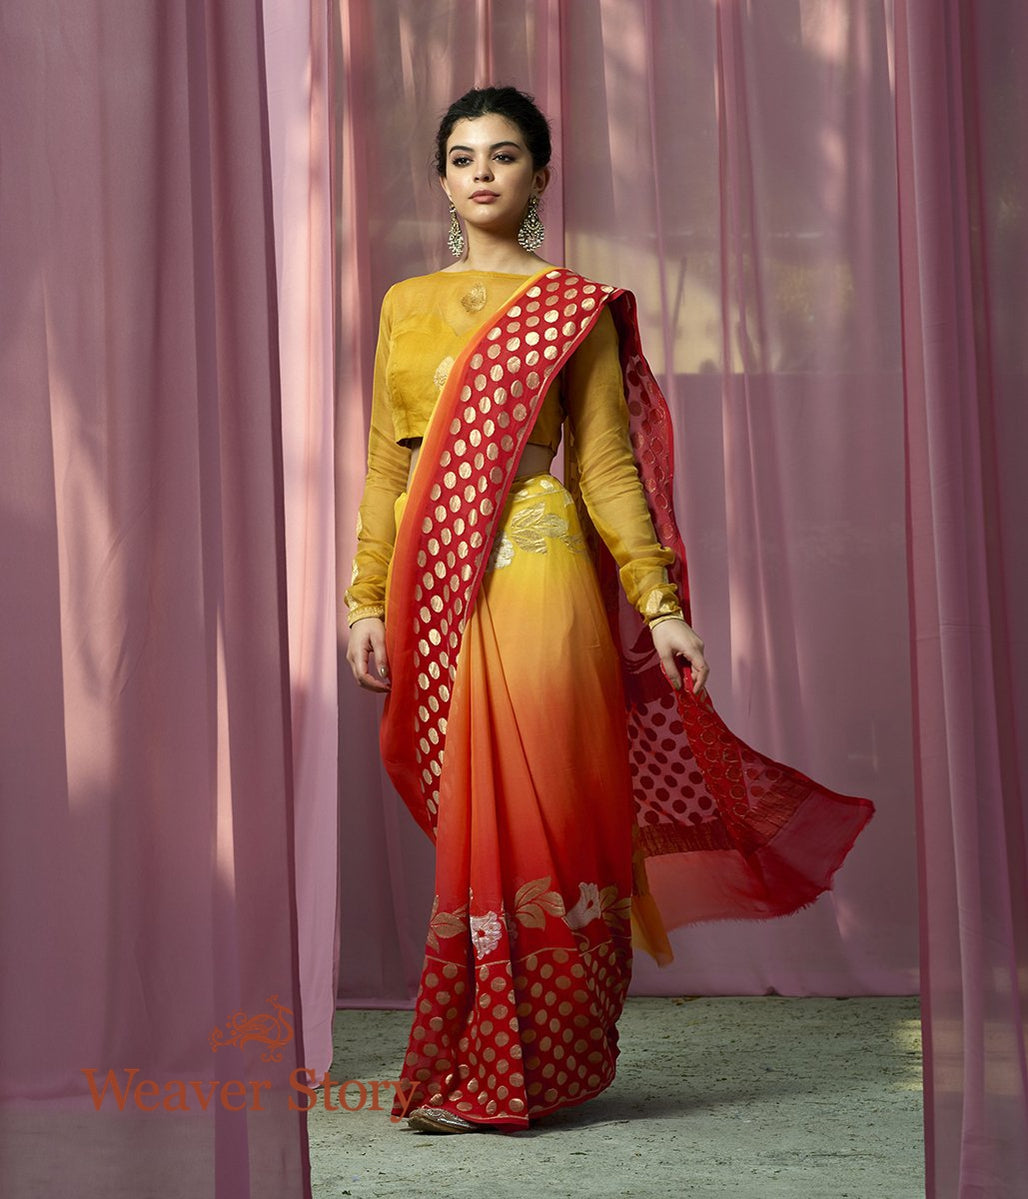 Handwoven Red Yellow Sona Rupa Georgette Saree